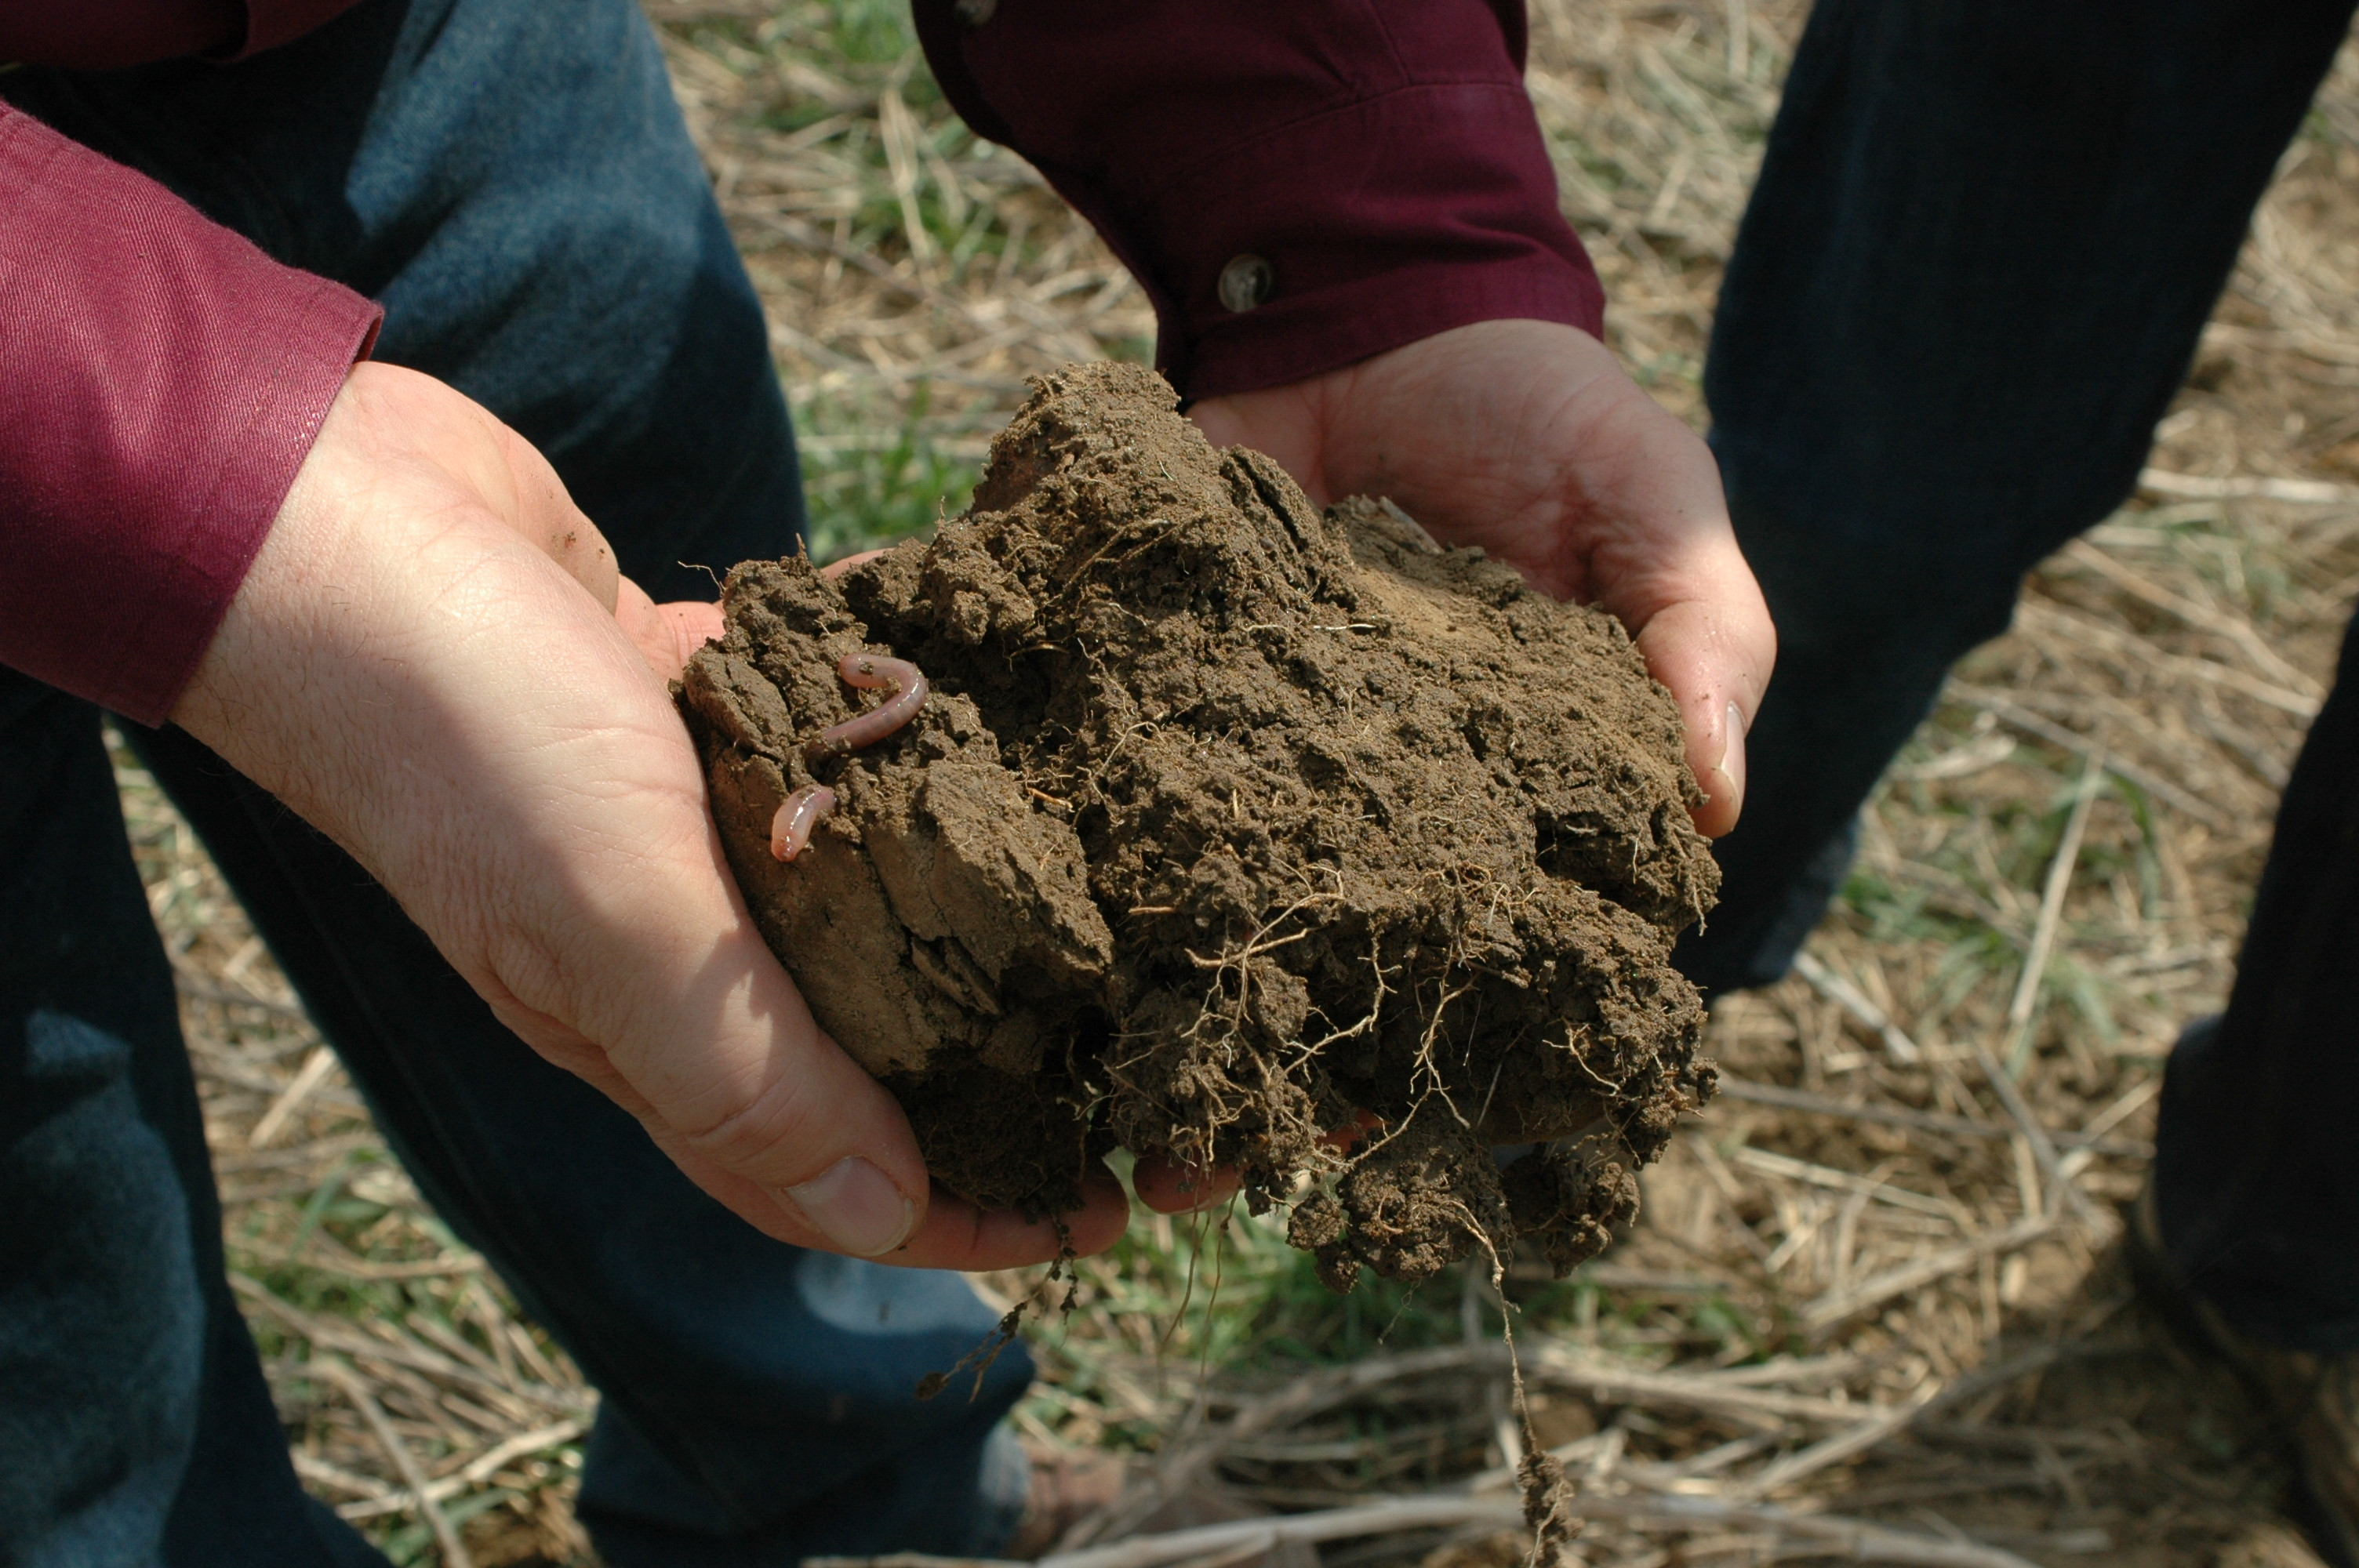 Healthy soil with earth worms